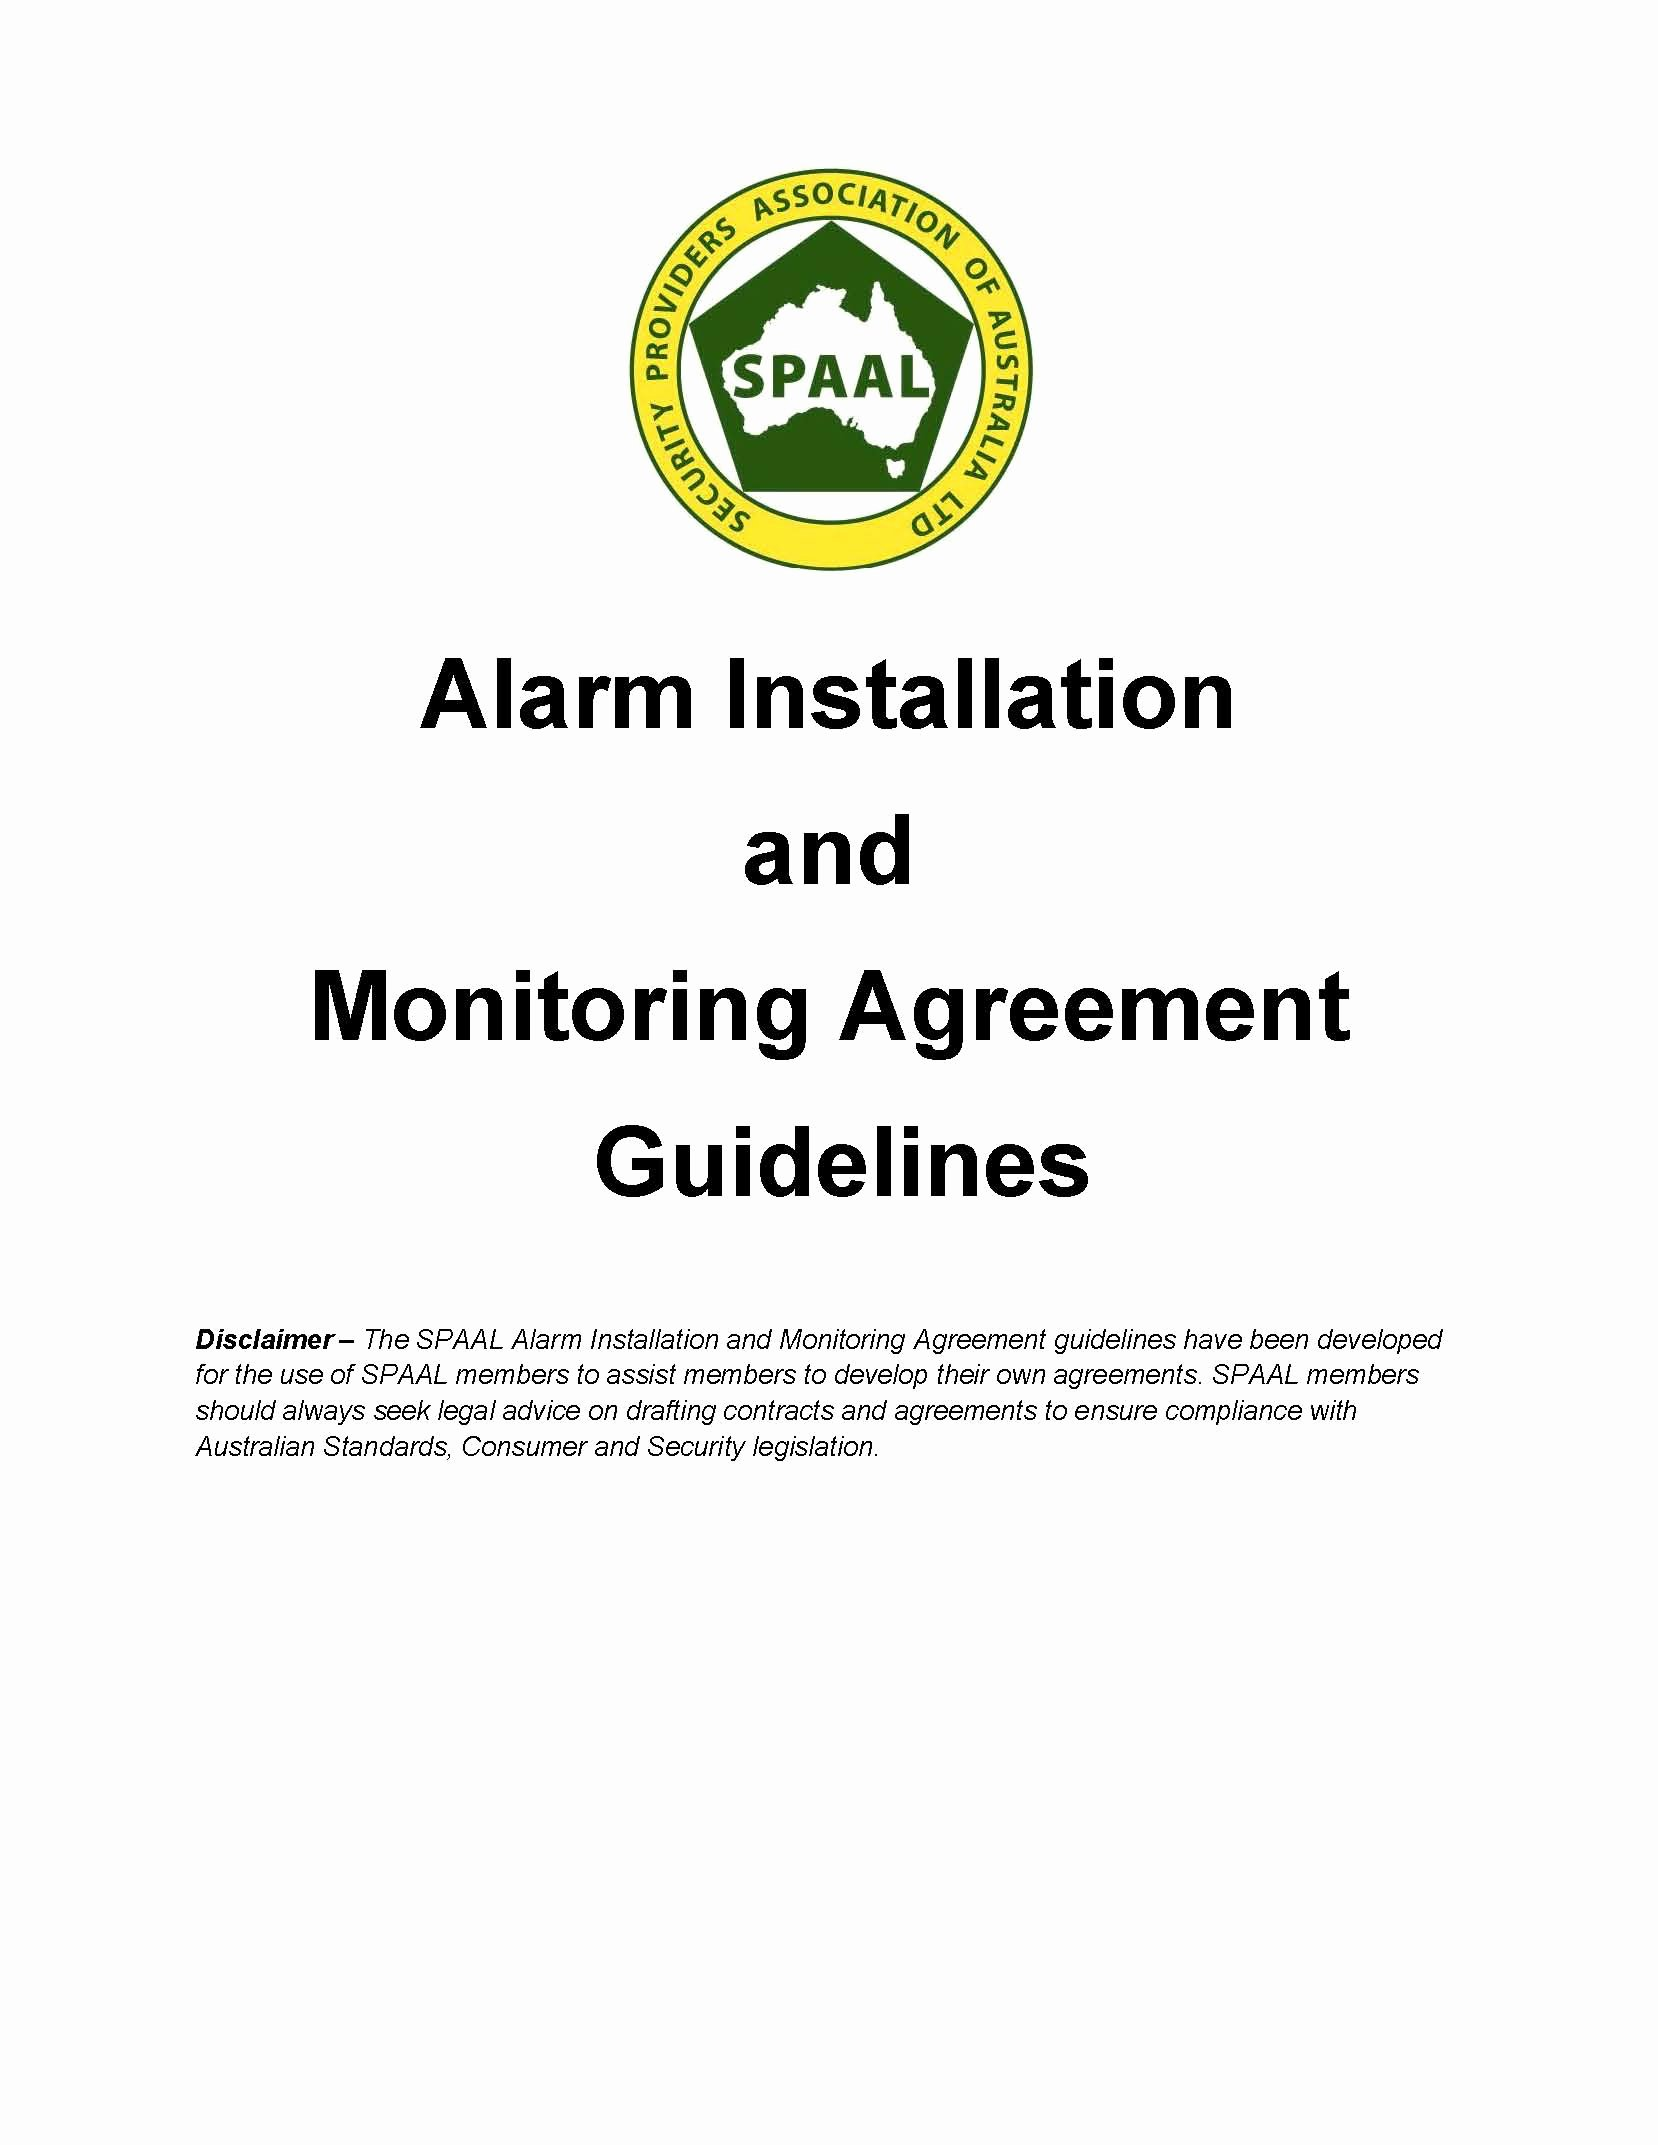 Alarm Monitoring Contract Template Elegant Alarm Installation & Monitoring Agreement Guidelines Spaal